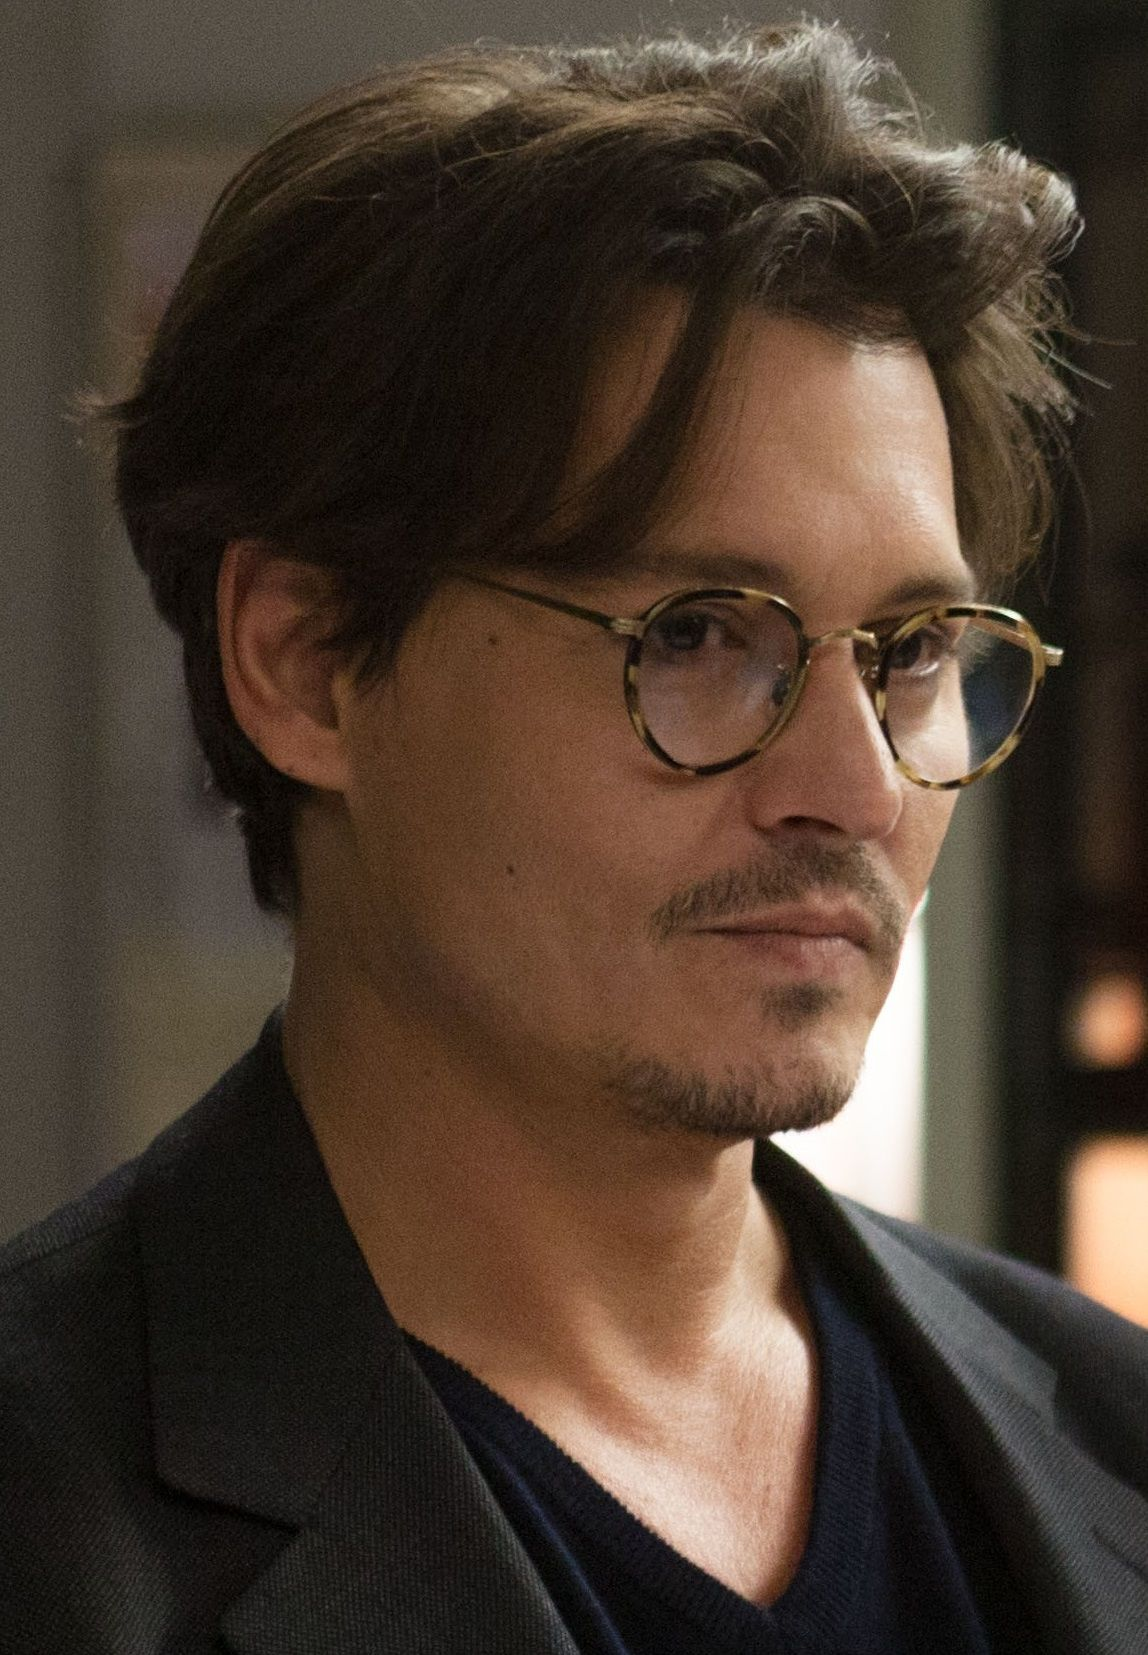 New Stills From Transcendence Johnny Depp Movies Johnny Depp